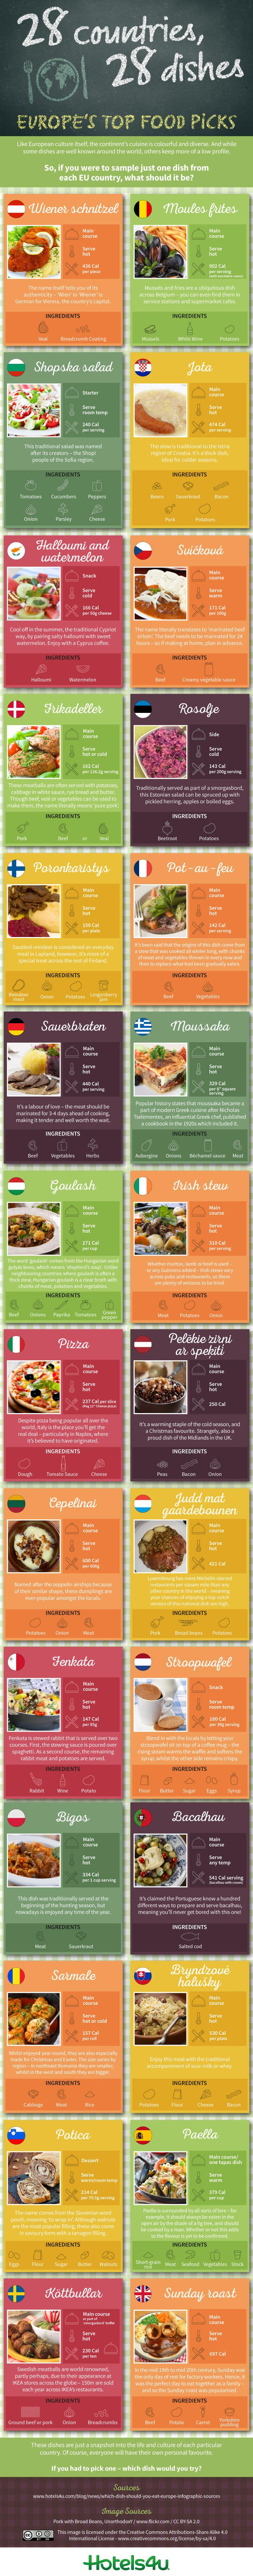 28countries28dishes